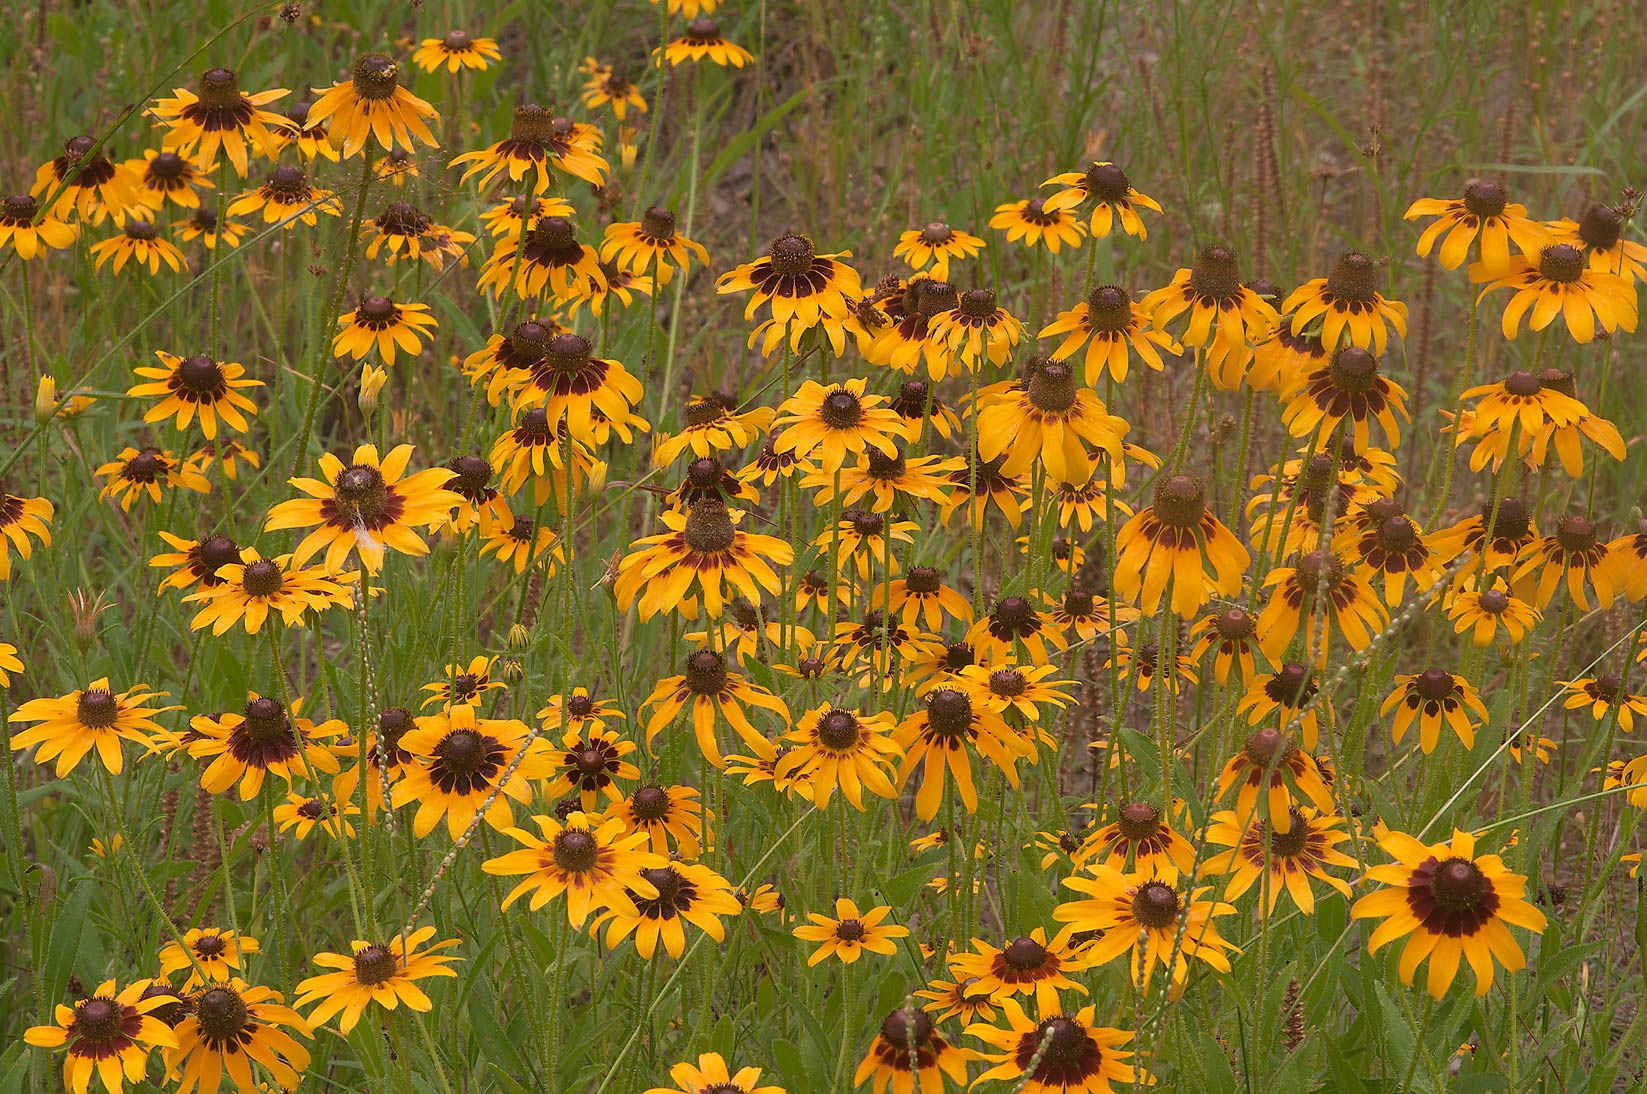 Black eyed susans in Lick Creek Park. College Station, Texas